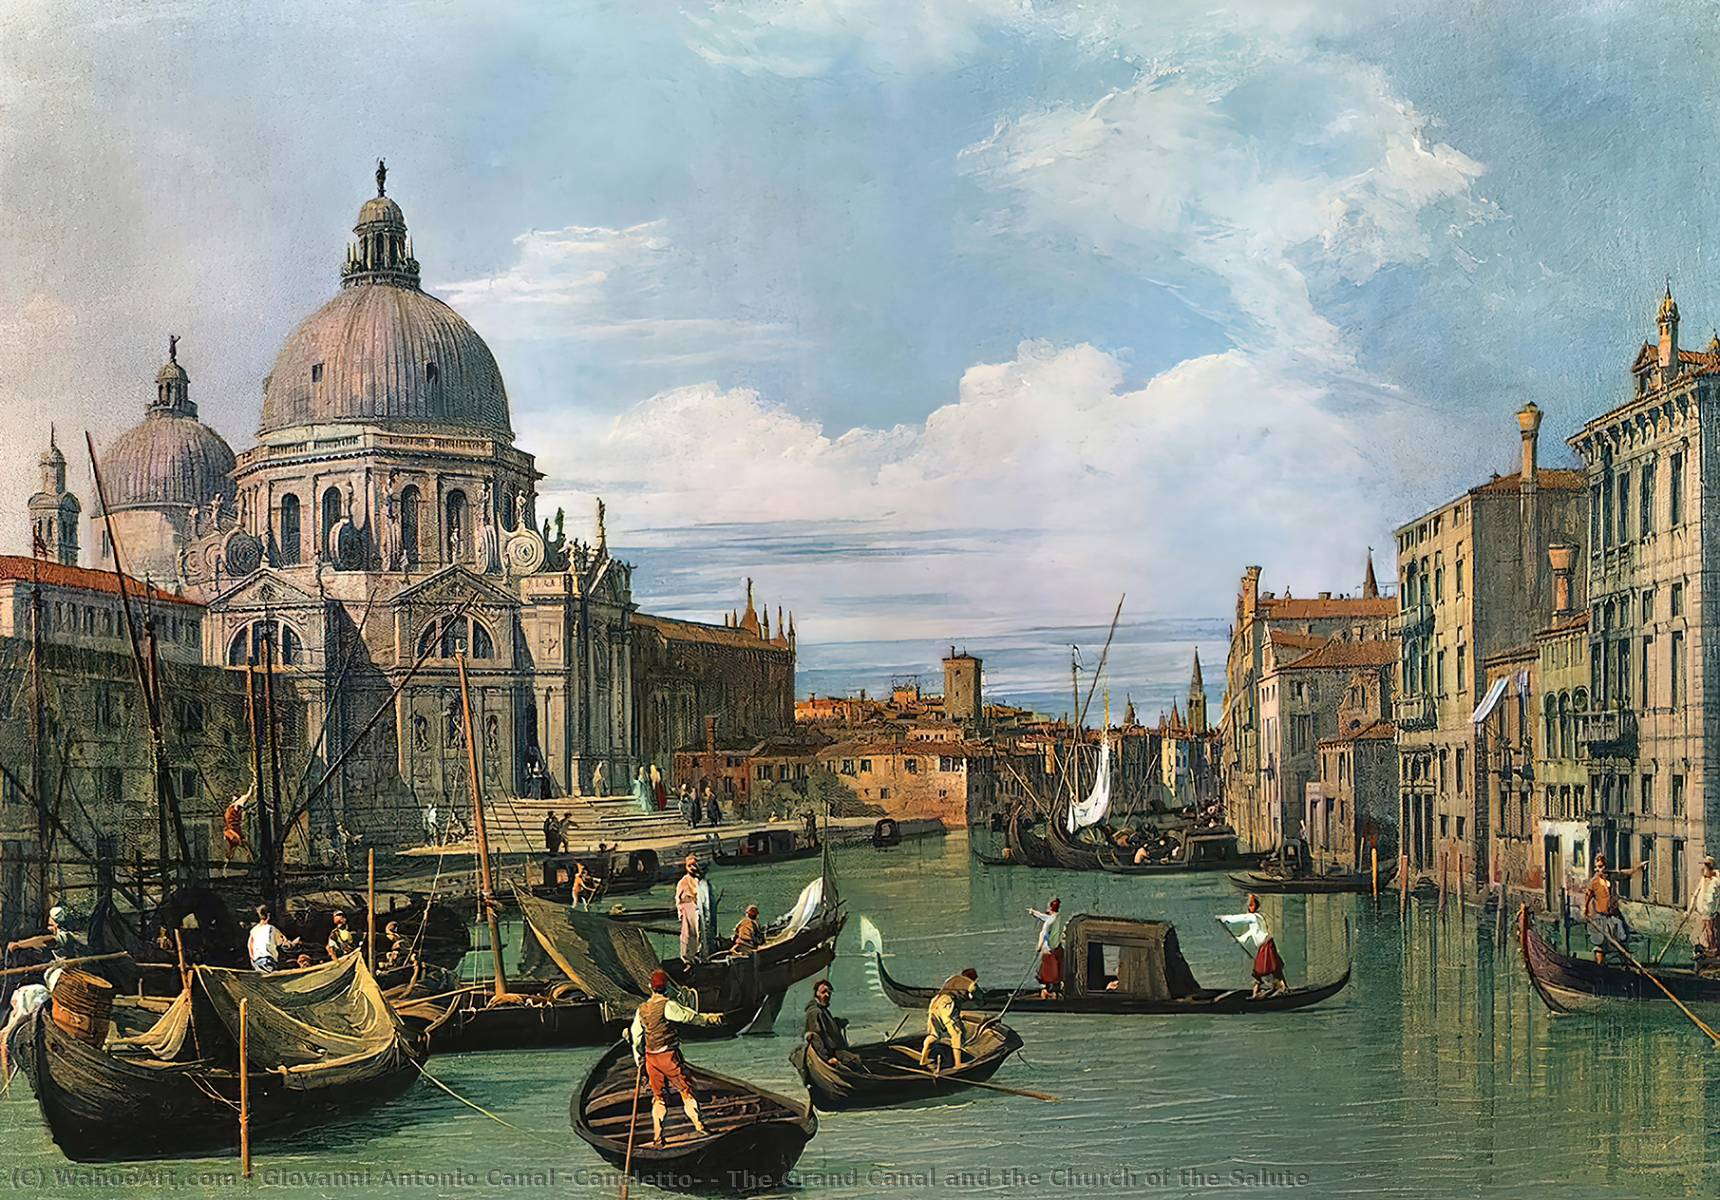 The Grand Canal and the Church of the Salute, 1730 by Giovanni Antonio Canal (Canaletto) (1730-1768, Italy) | Oil Painting | WahooArt.com